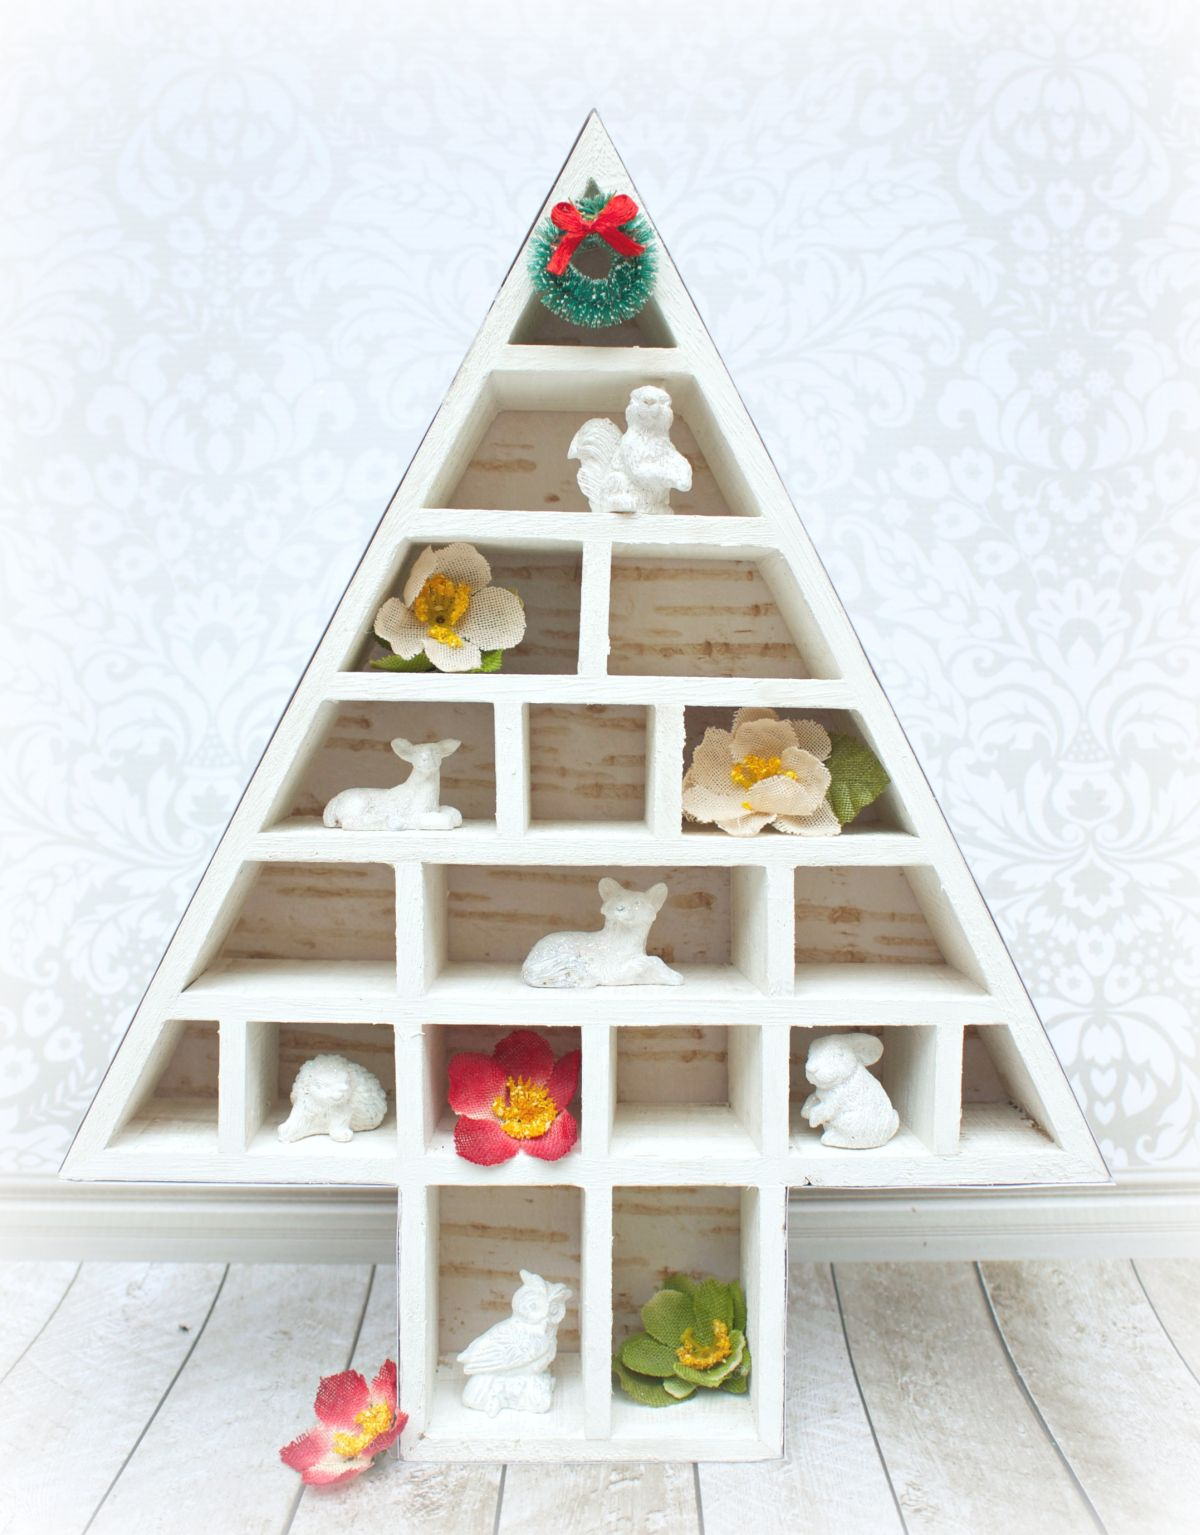 Woodlands Themed Decorative Christmas